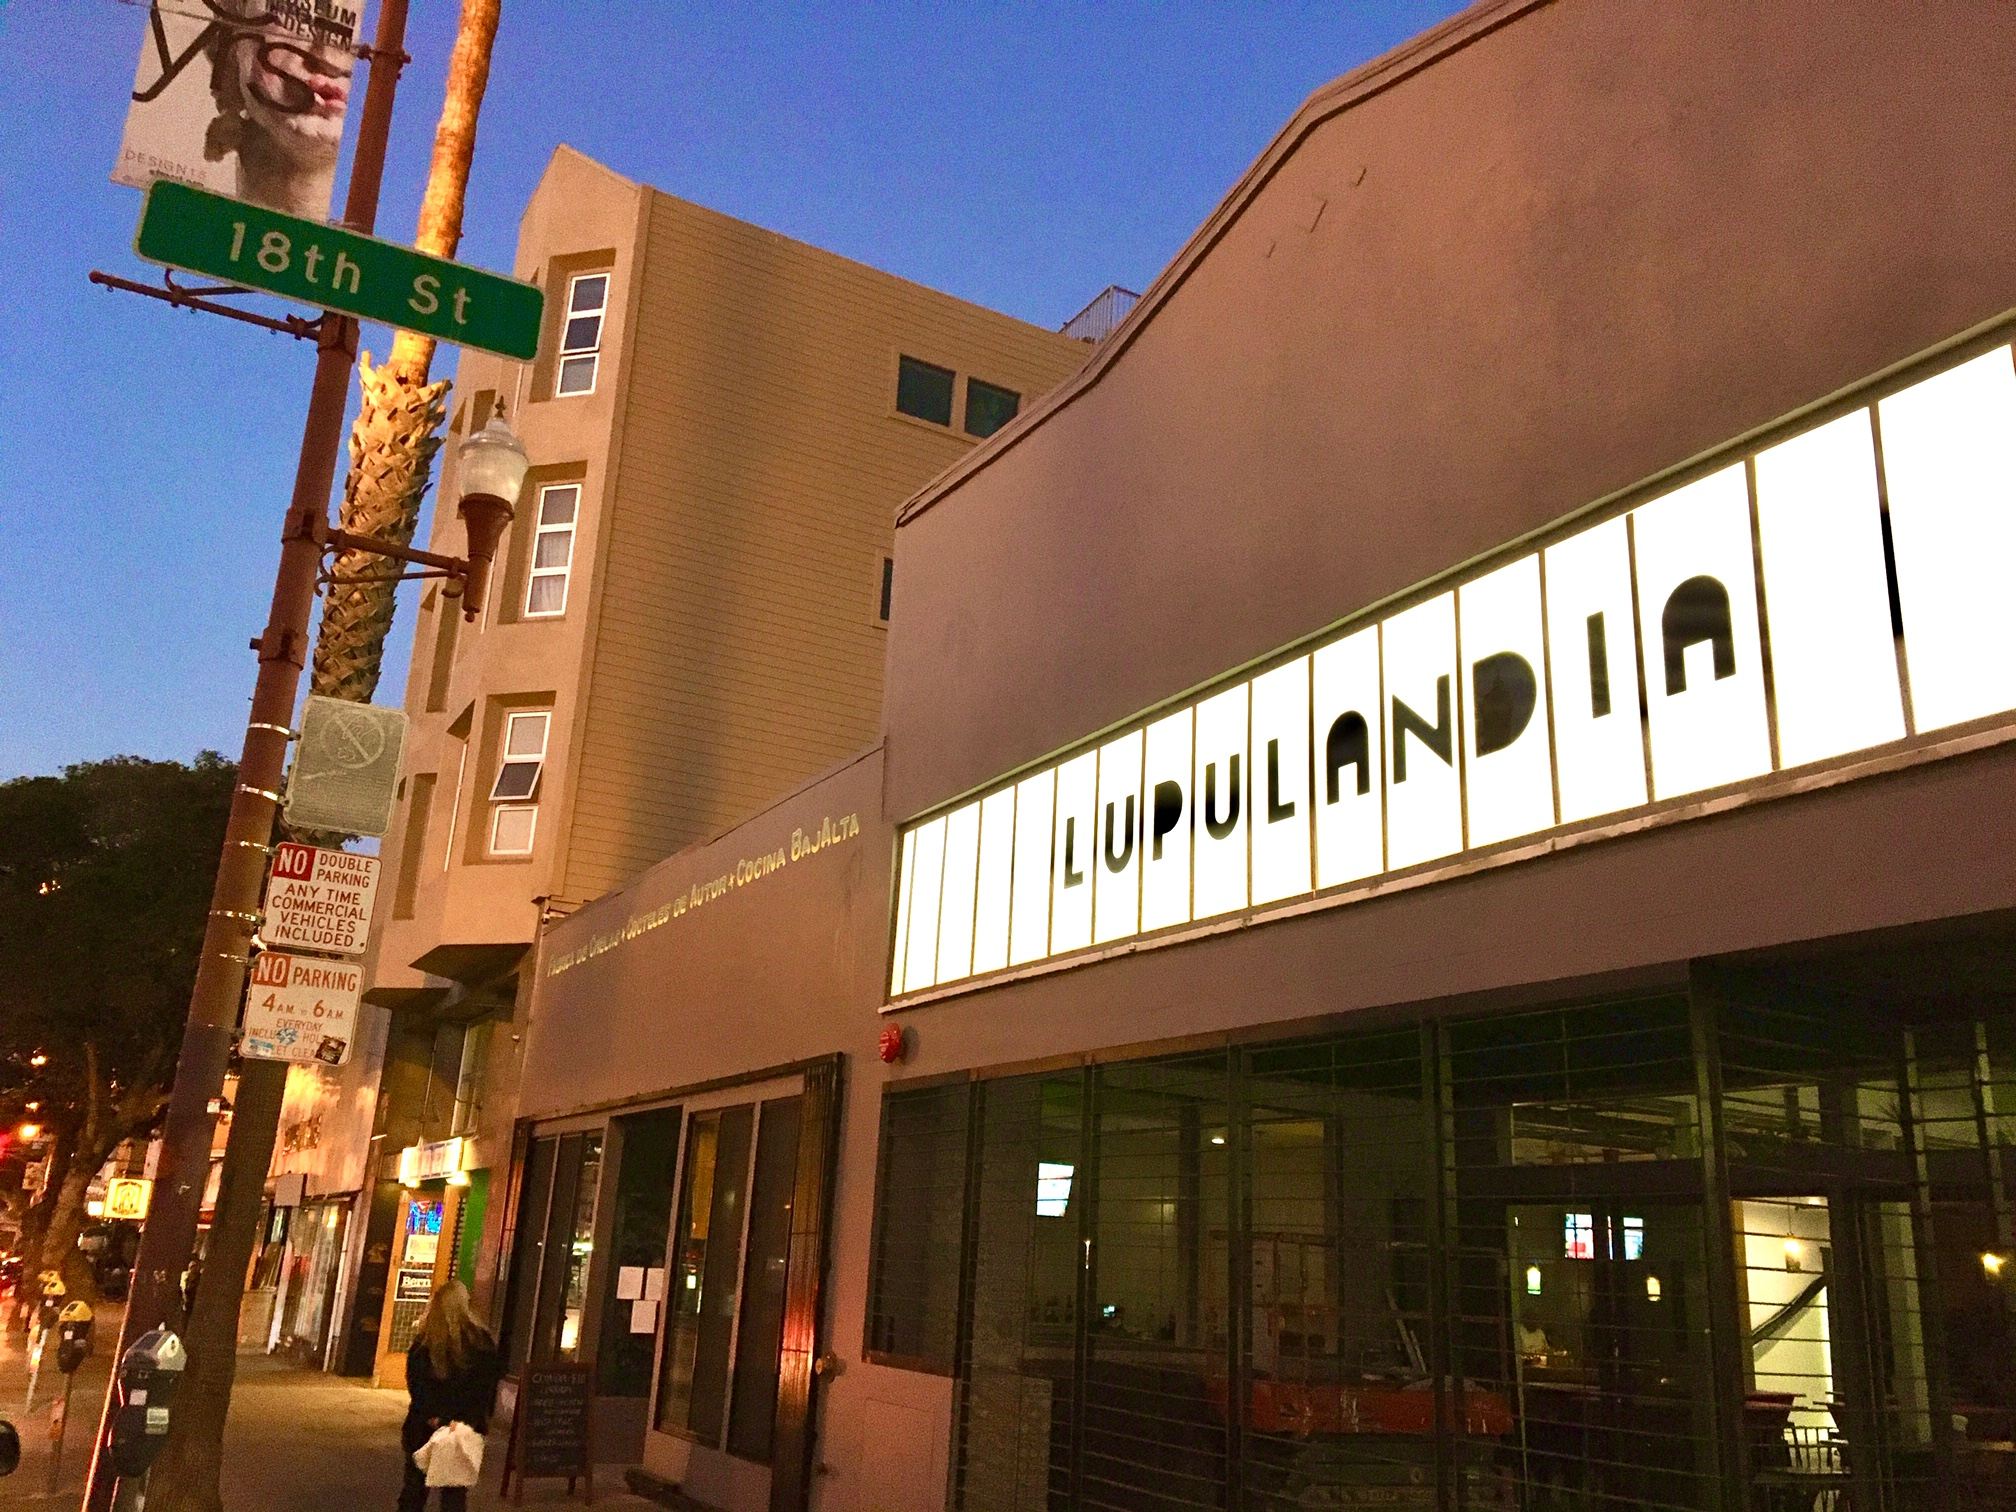 Exterior shot of Lupulandia, with the 18th Street street sign visible